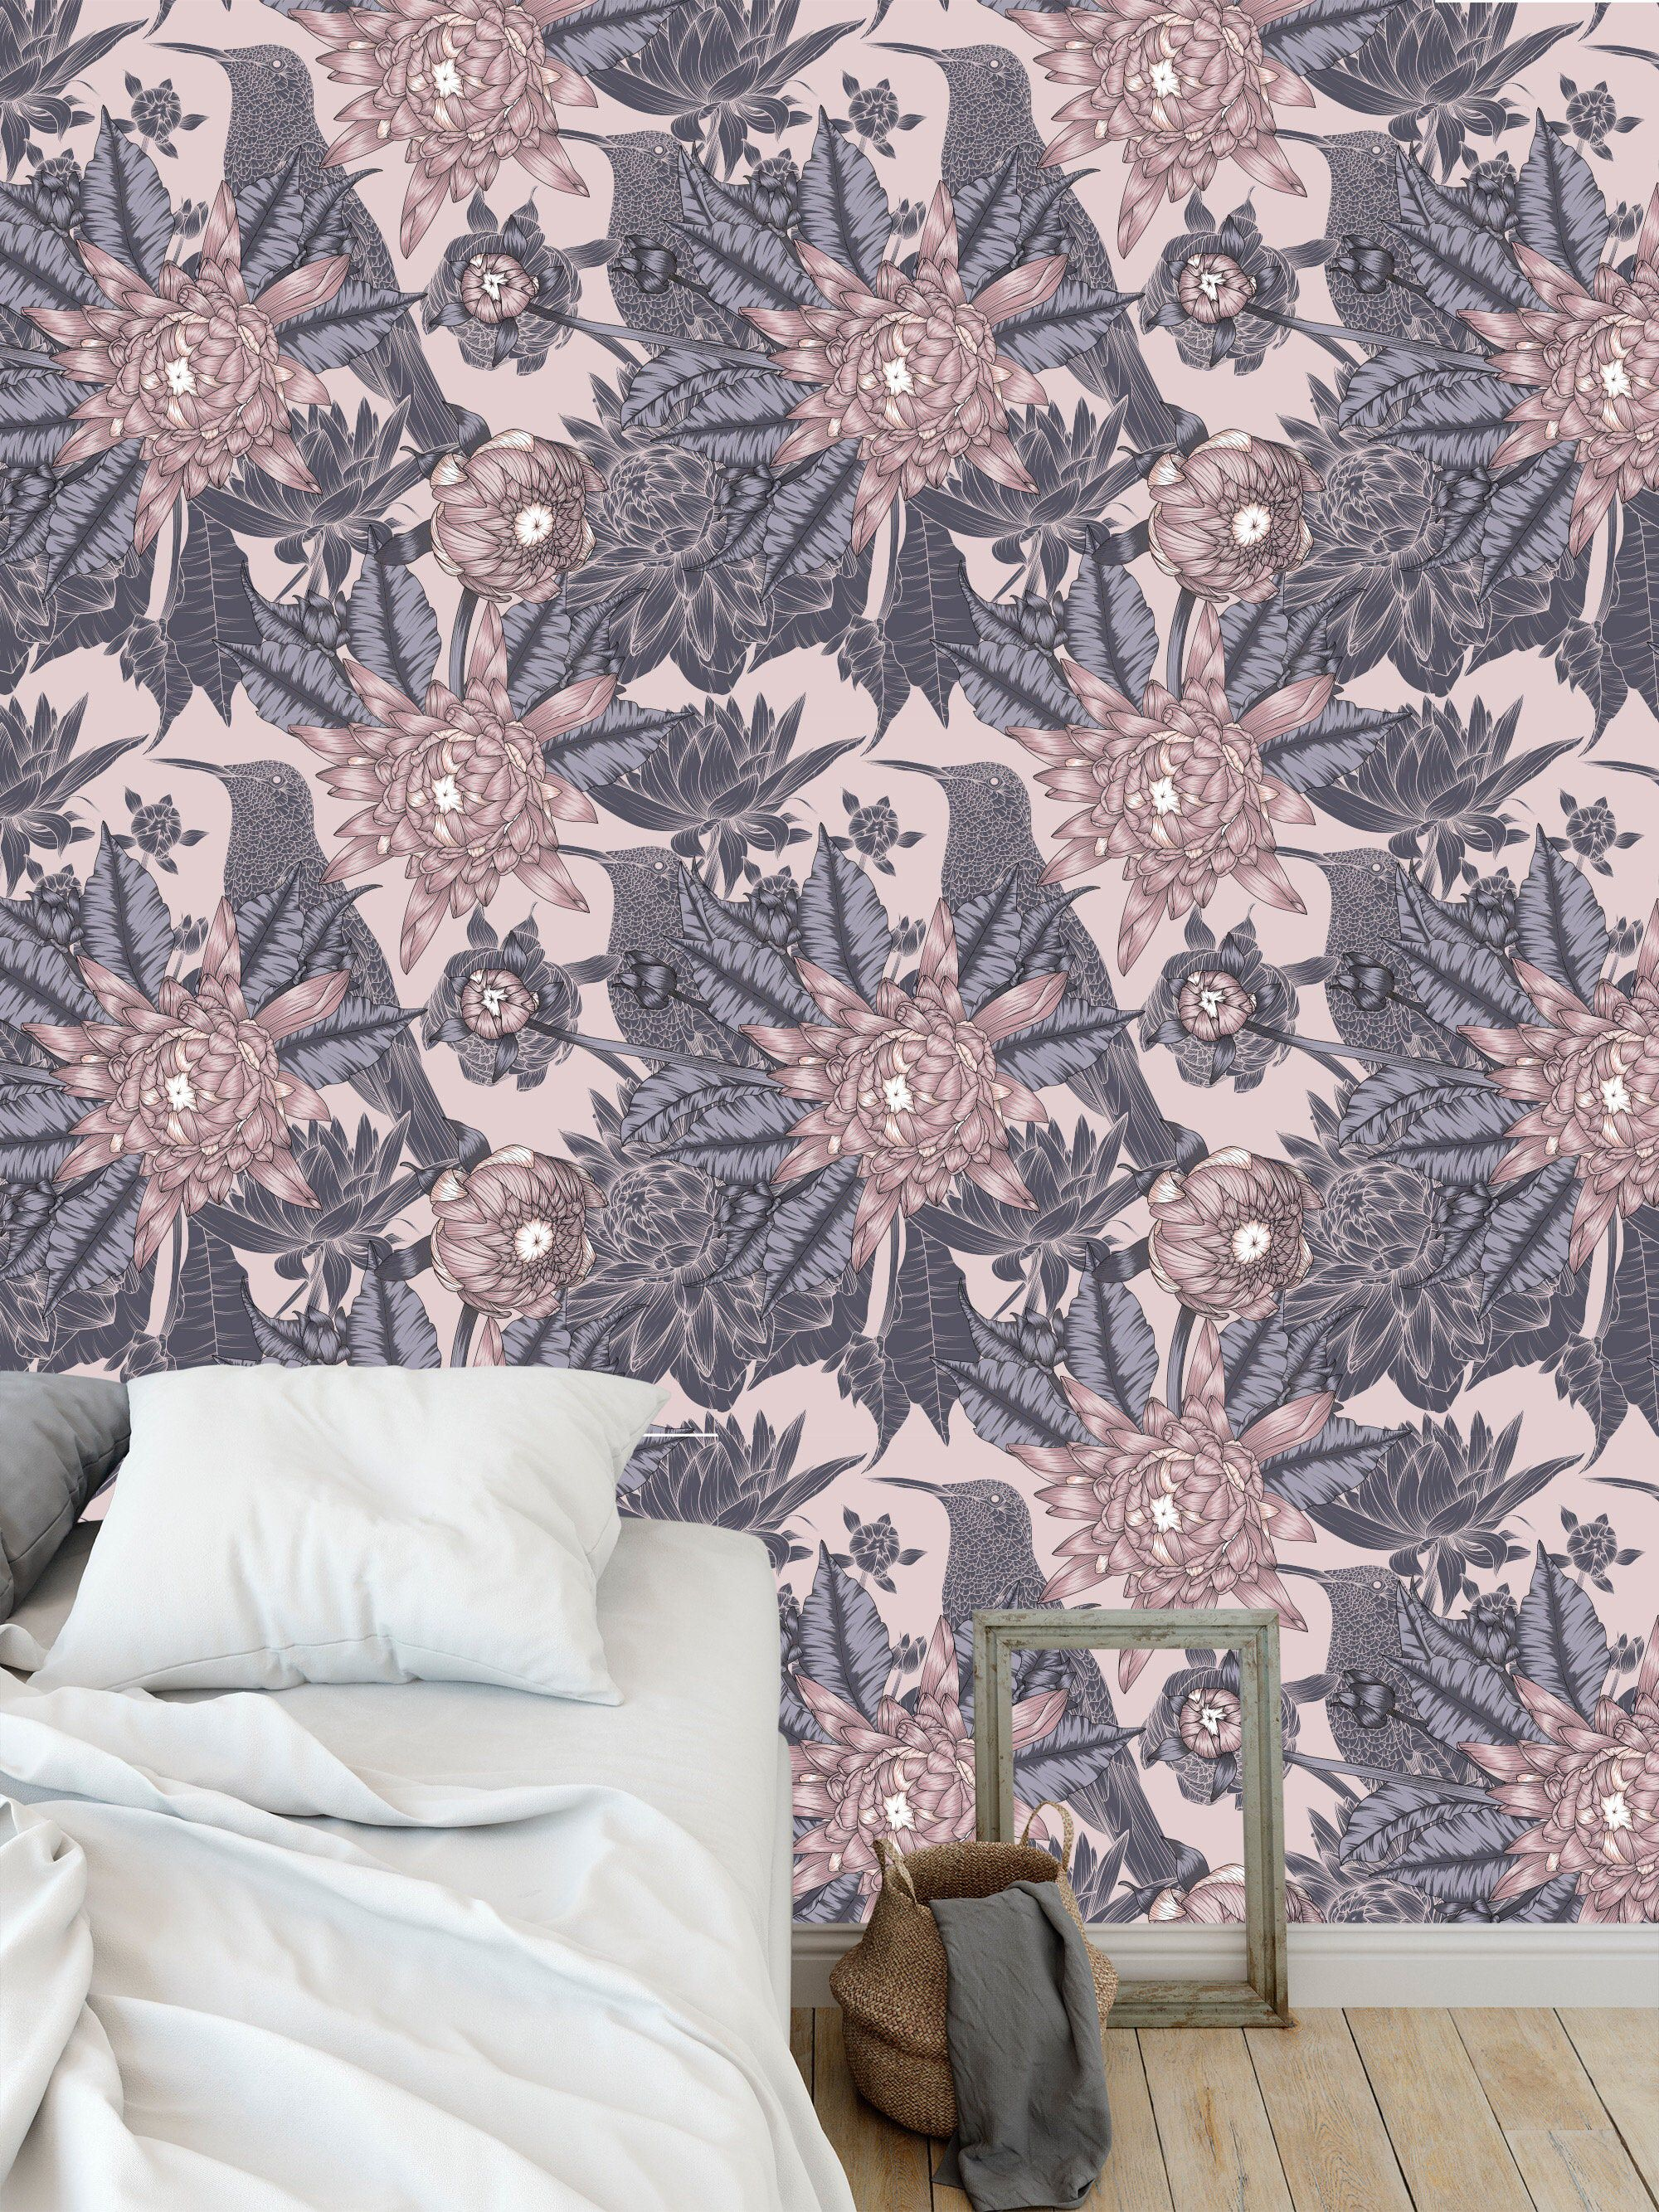 Removable peel and stick wallpaper/ vintage pink purple